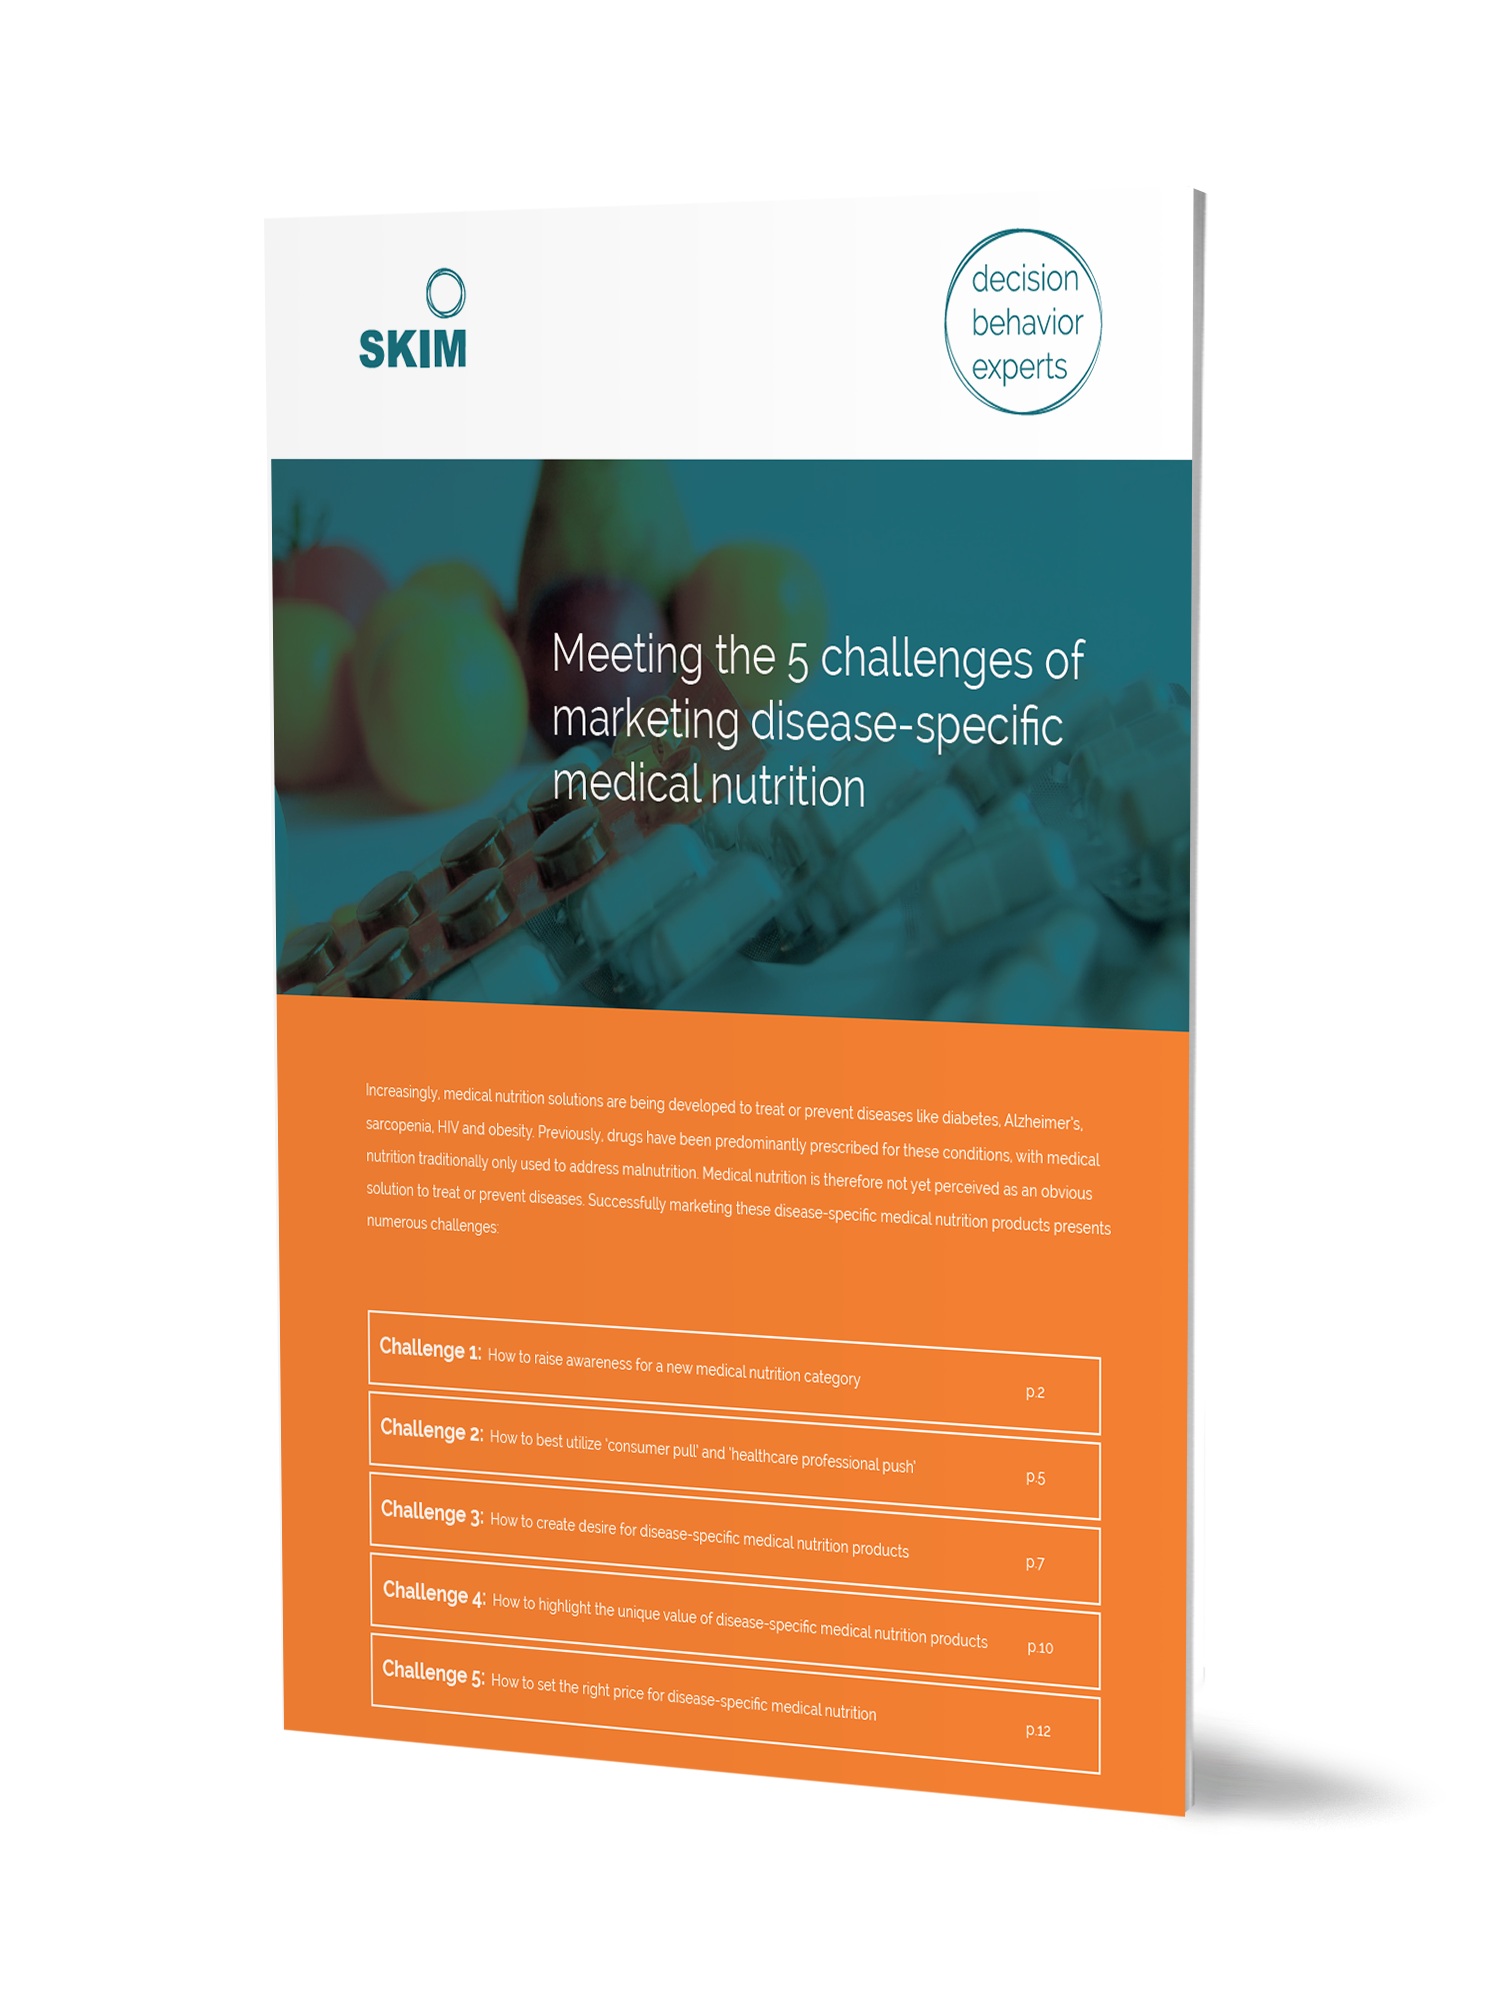 GUIDE: 5 challenges of marketing disease-specific medical